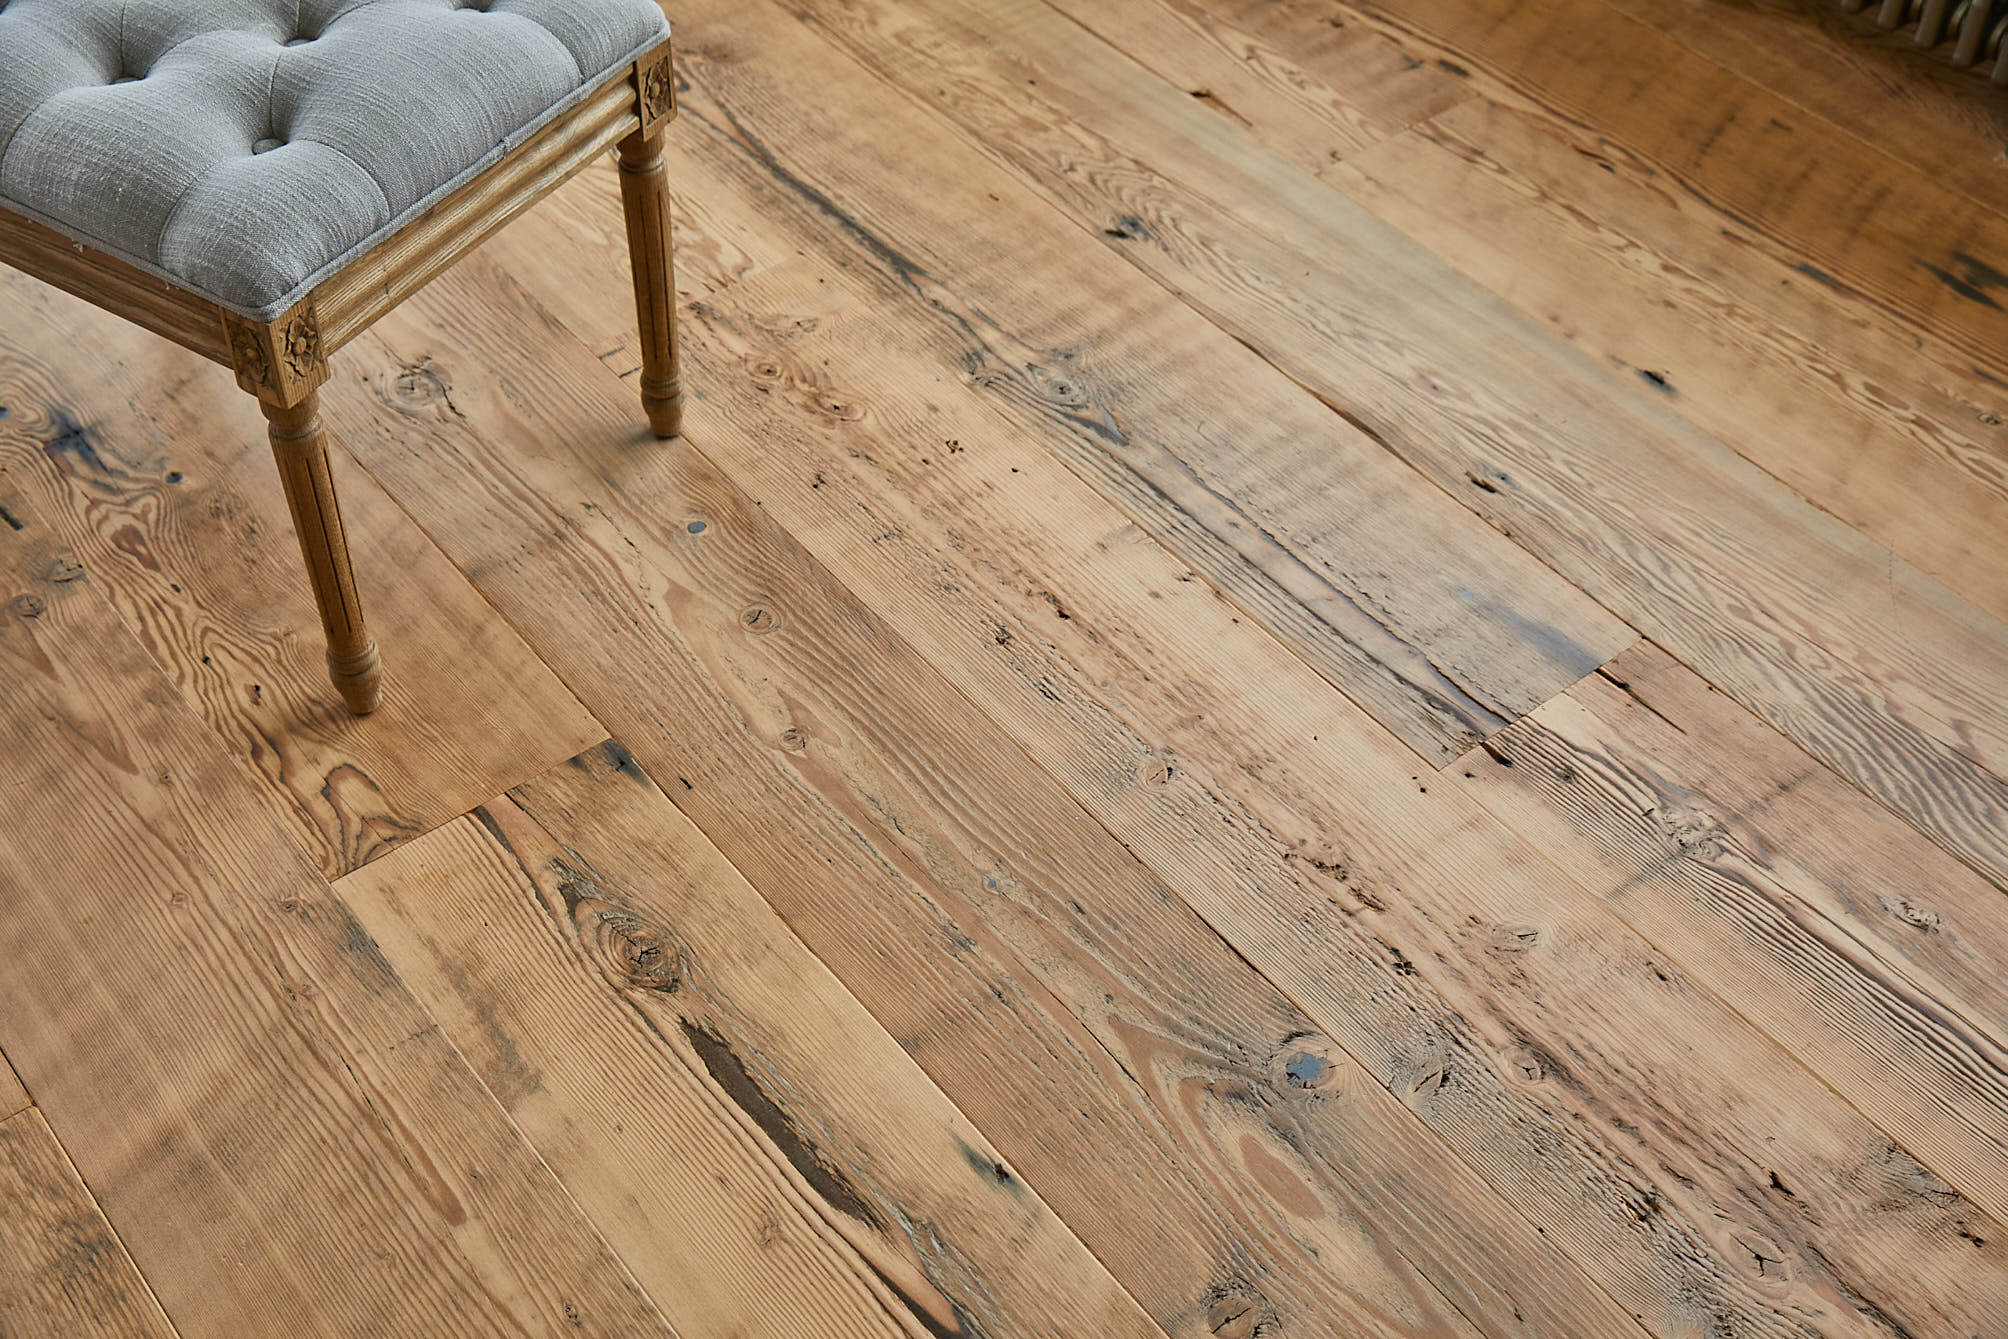 Knots and textures of douglas fir floorboards